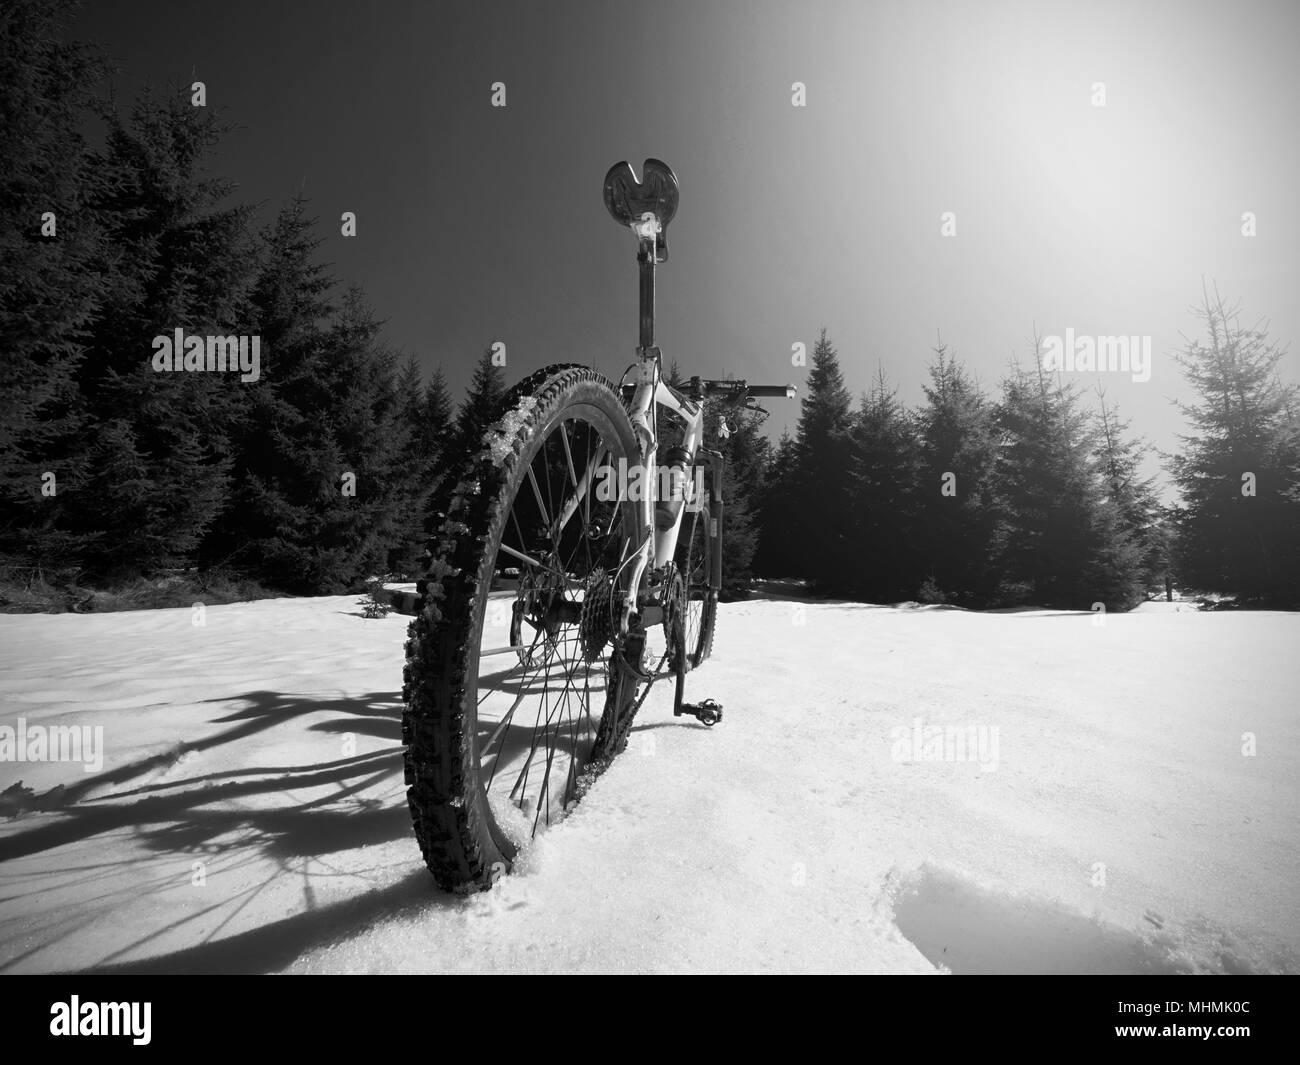 Cycling in winter snowy mountains on large tire wheels mountain bike. Sunny winter day. - Stock Image